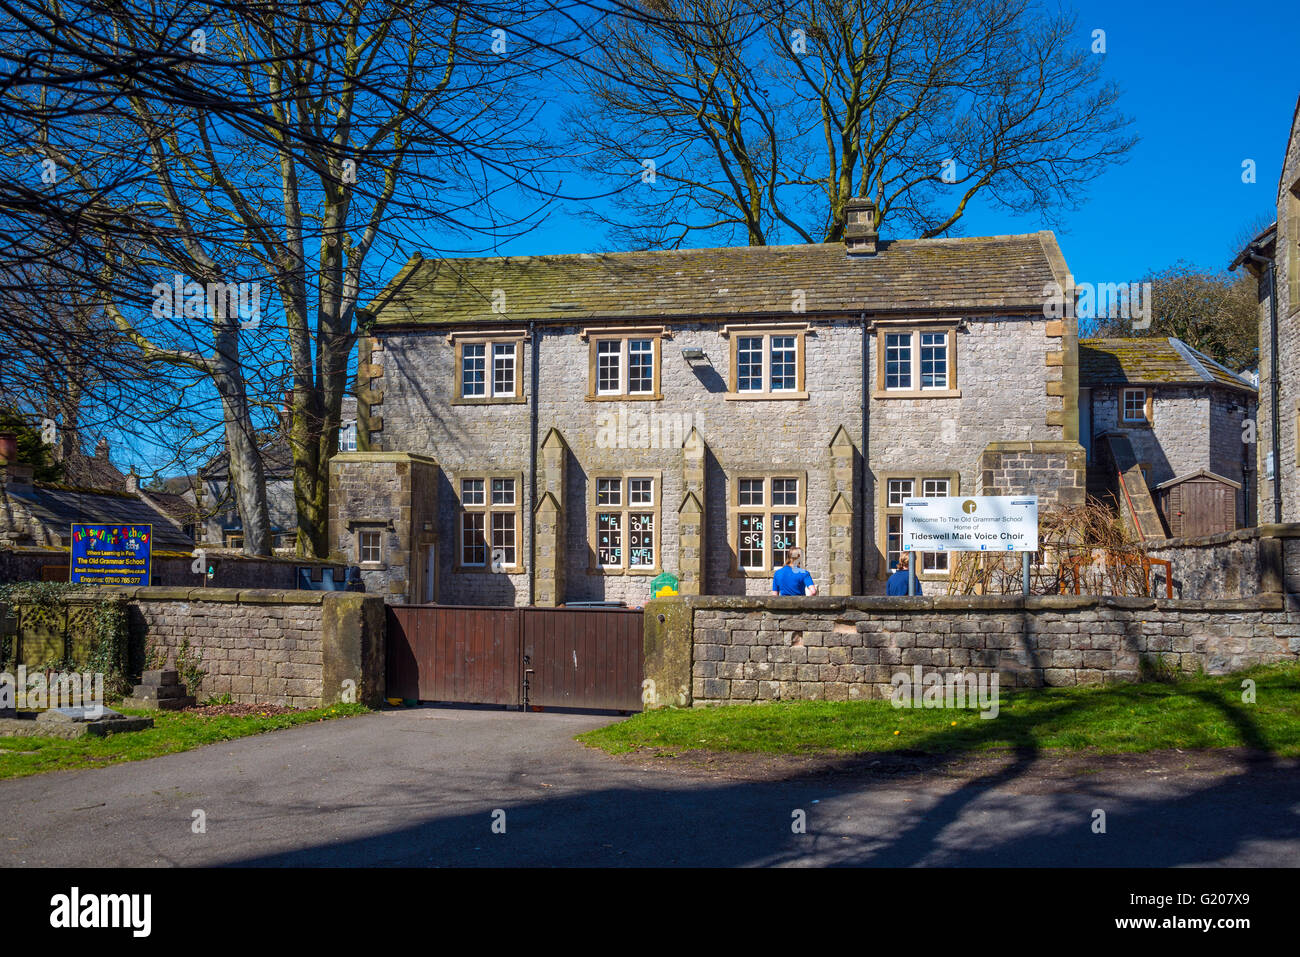 The Old Grammar School, Tideswell, Derbyshire - Stock Image